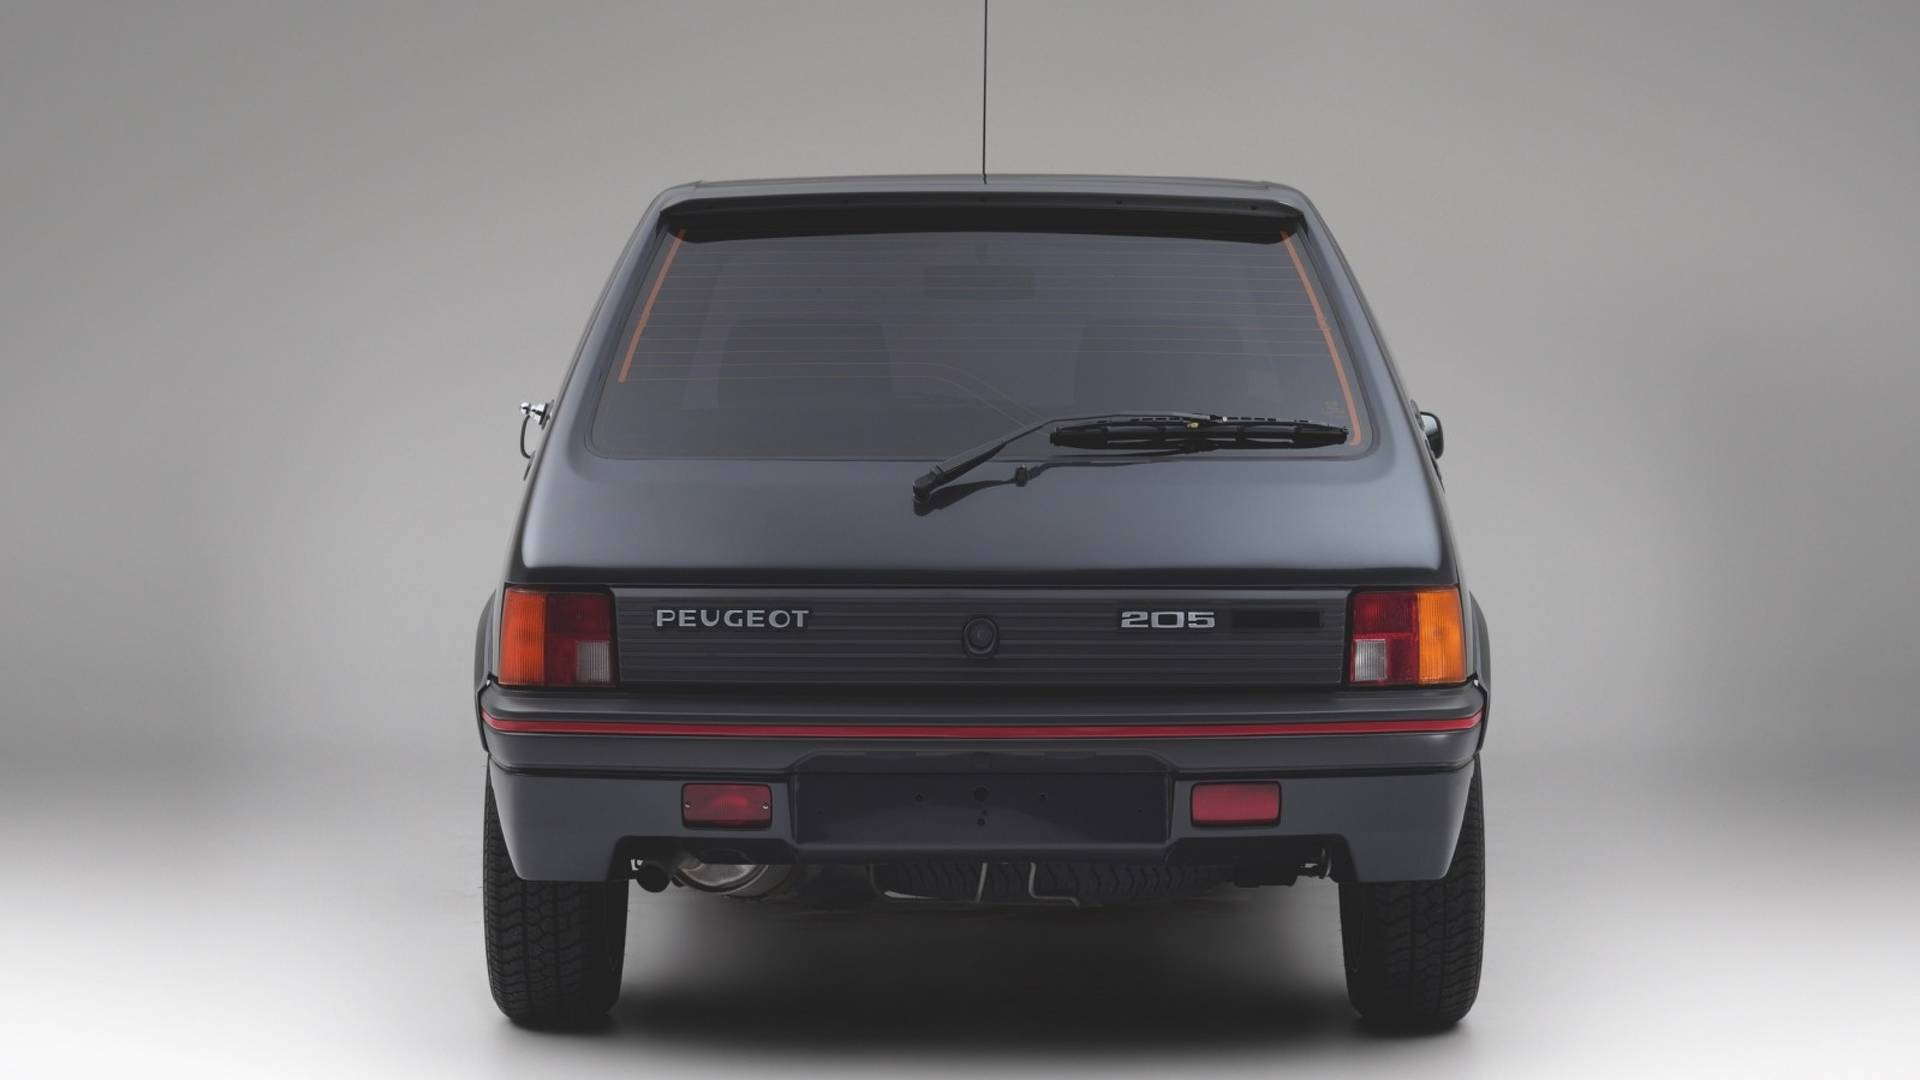 armored peugeot 205 gti is not your typical hot hatch